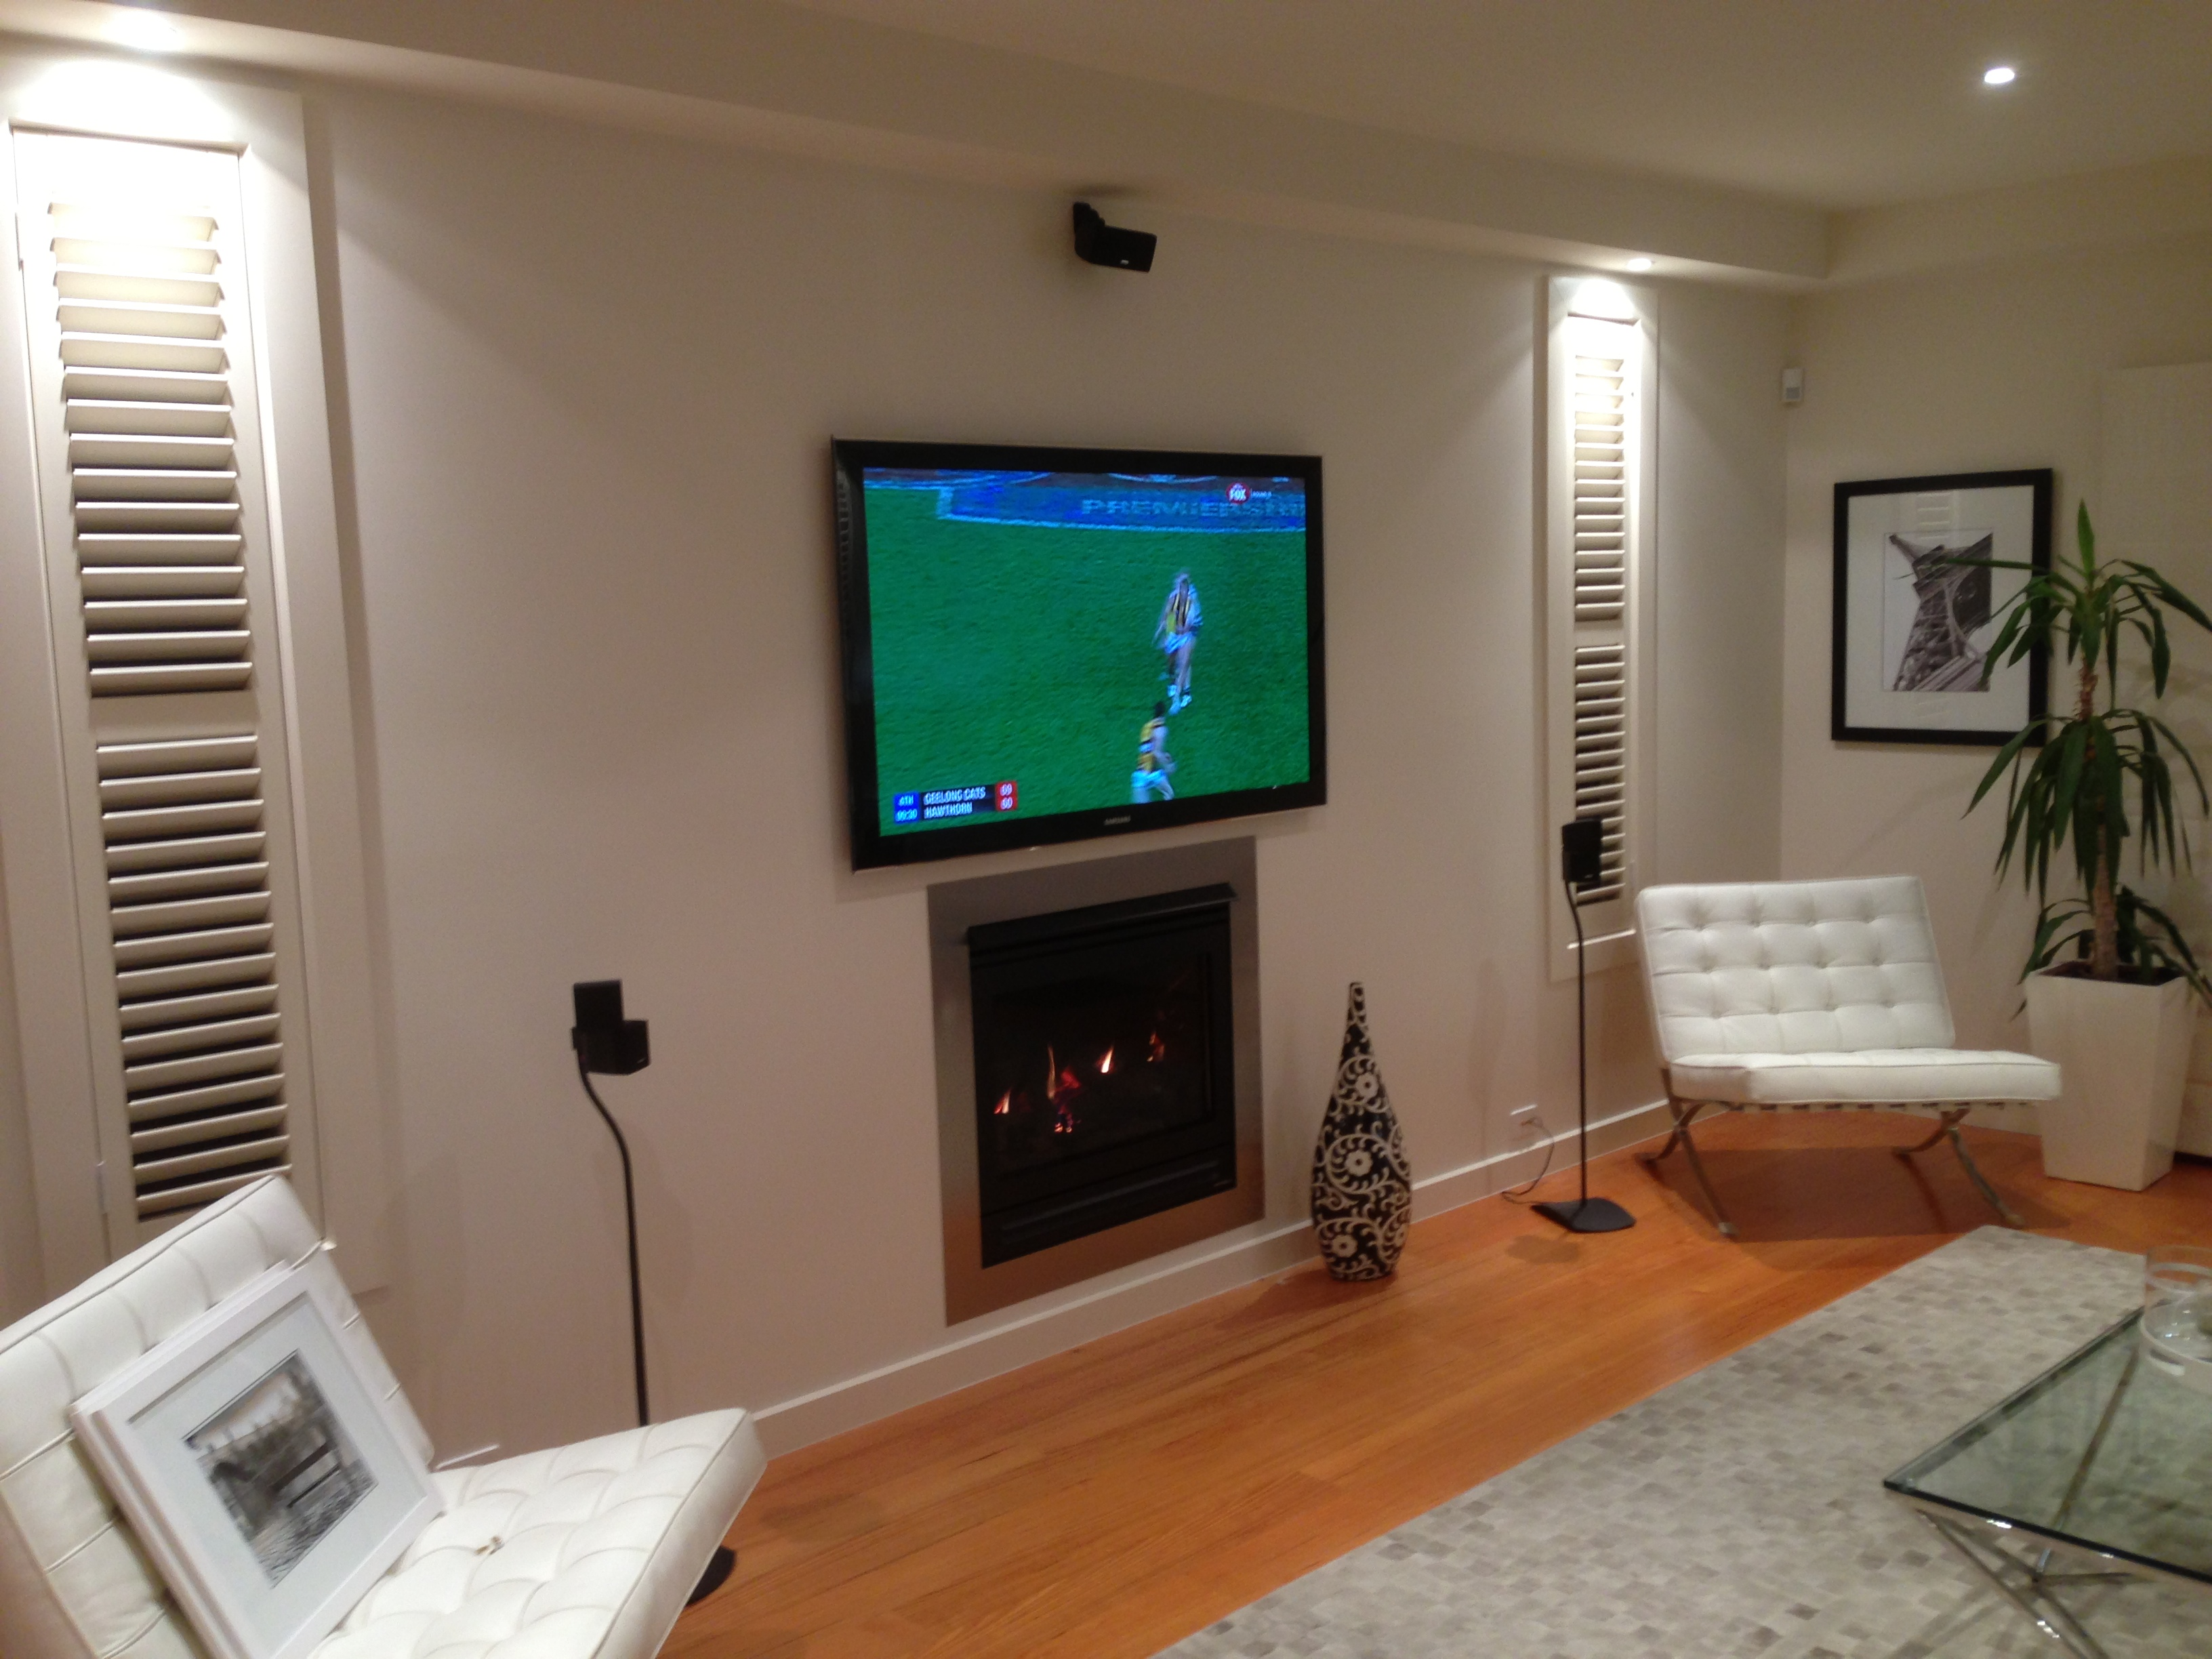 Wall mounted TV above Fire